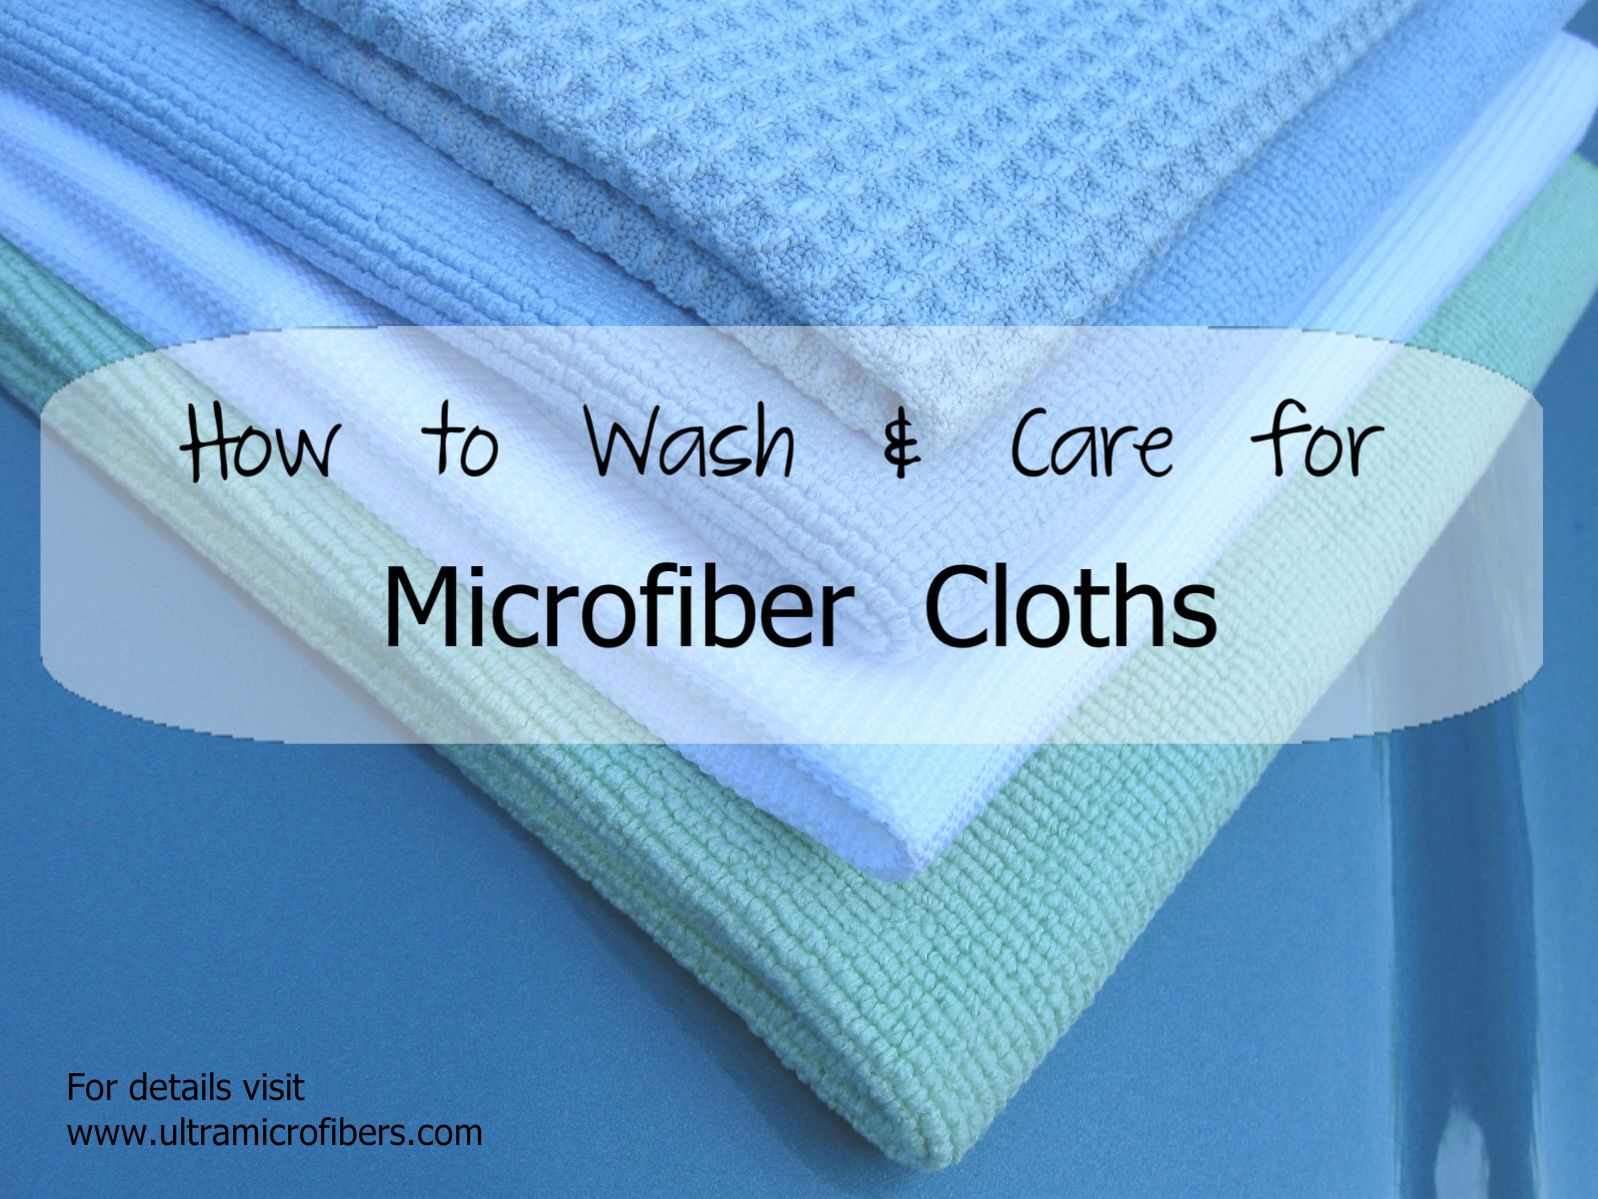 Ultra Microfibers Has Tips On How To Wash And Care For Microfiber Cloths Http Www Ultramicrofib Cleaning Clothes Microfiber Cleaning Cloths Clean Microfiber